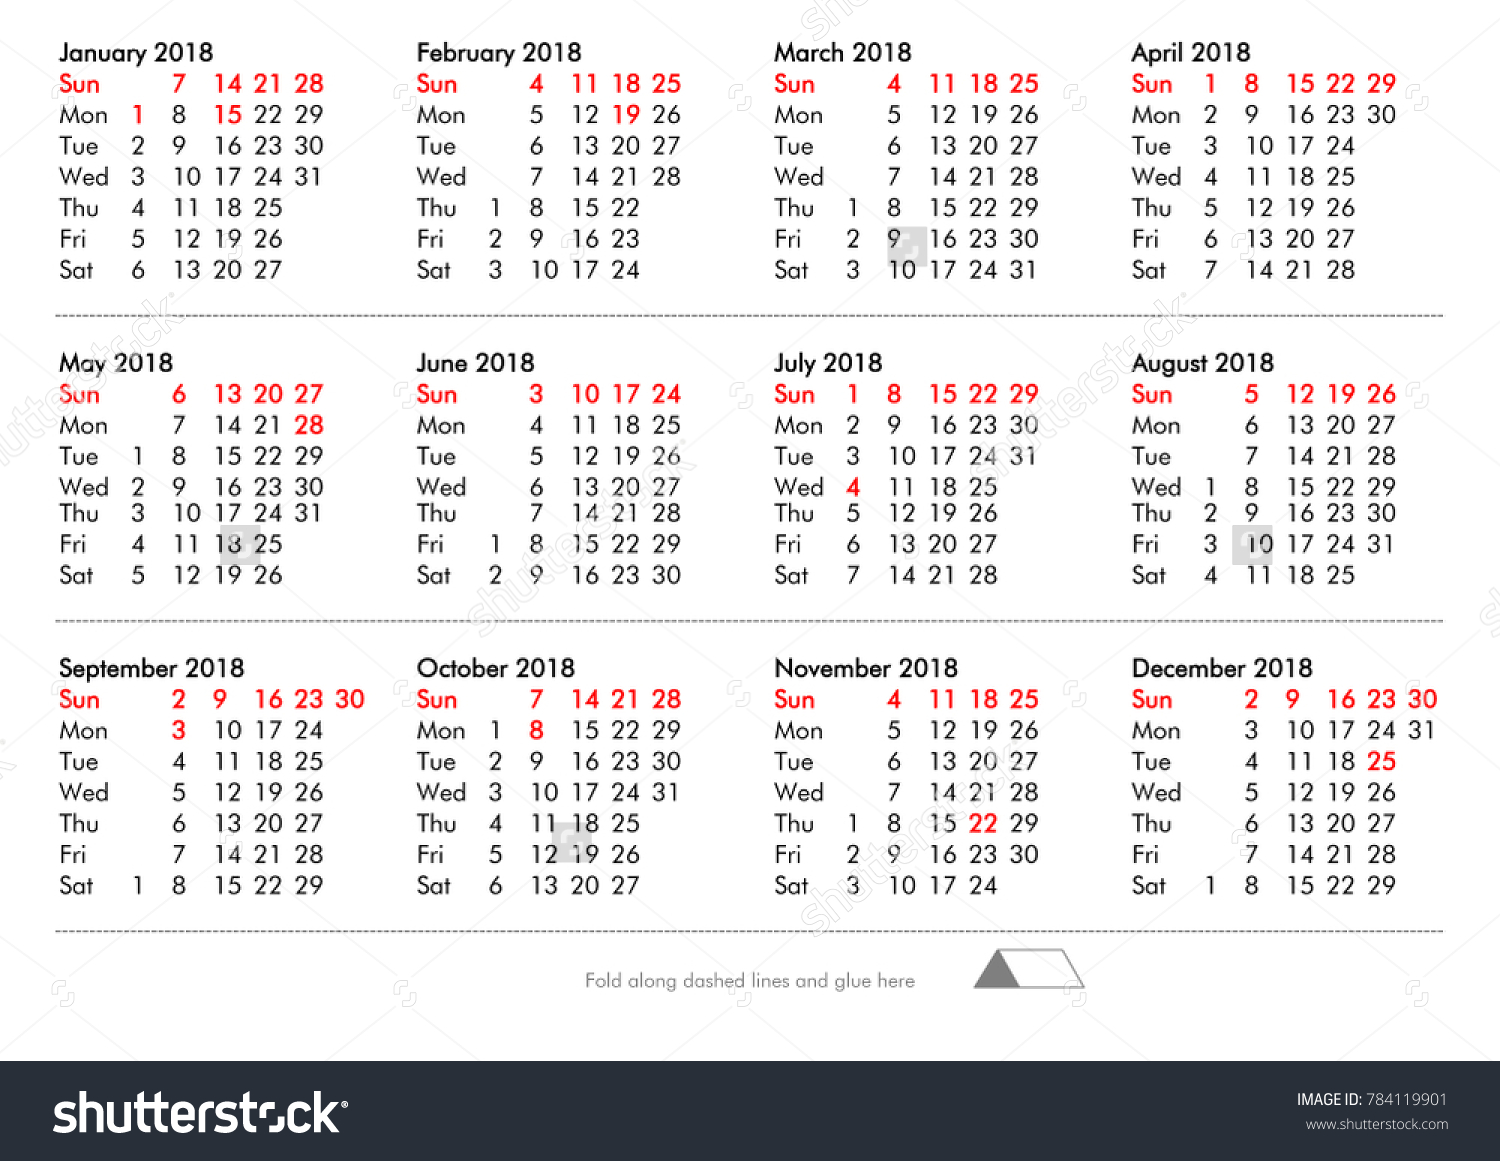 DIY Fold And Glue American Calendar Of Year 2018 With Public Holidays Bank For